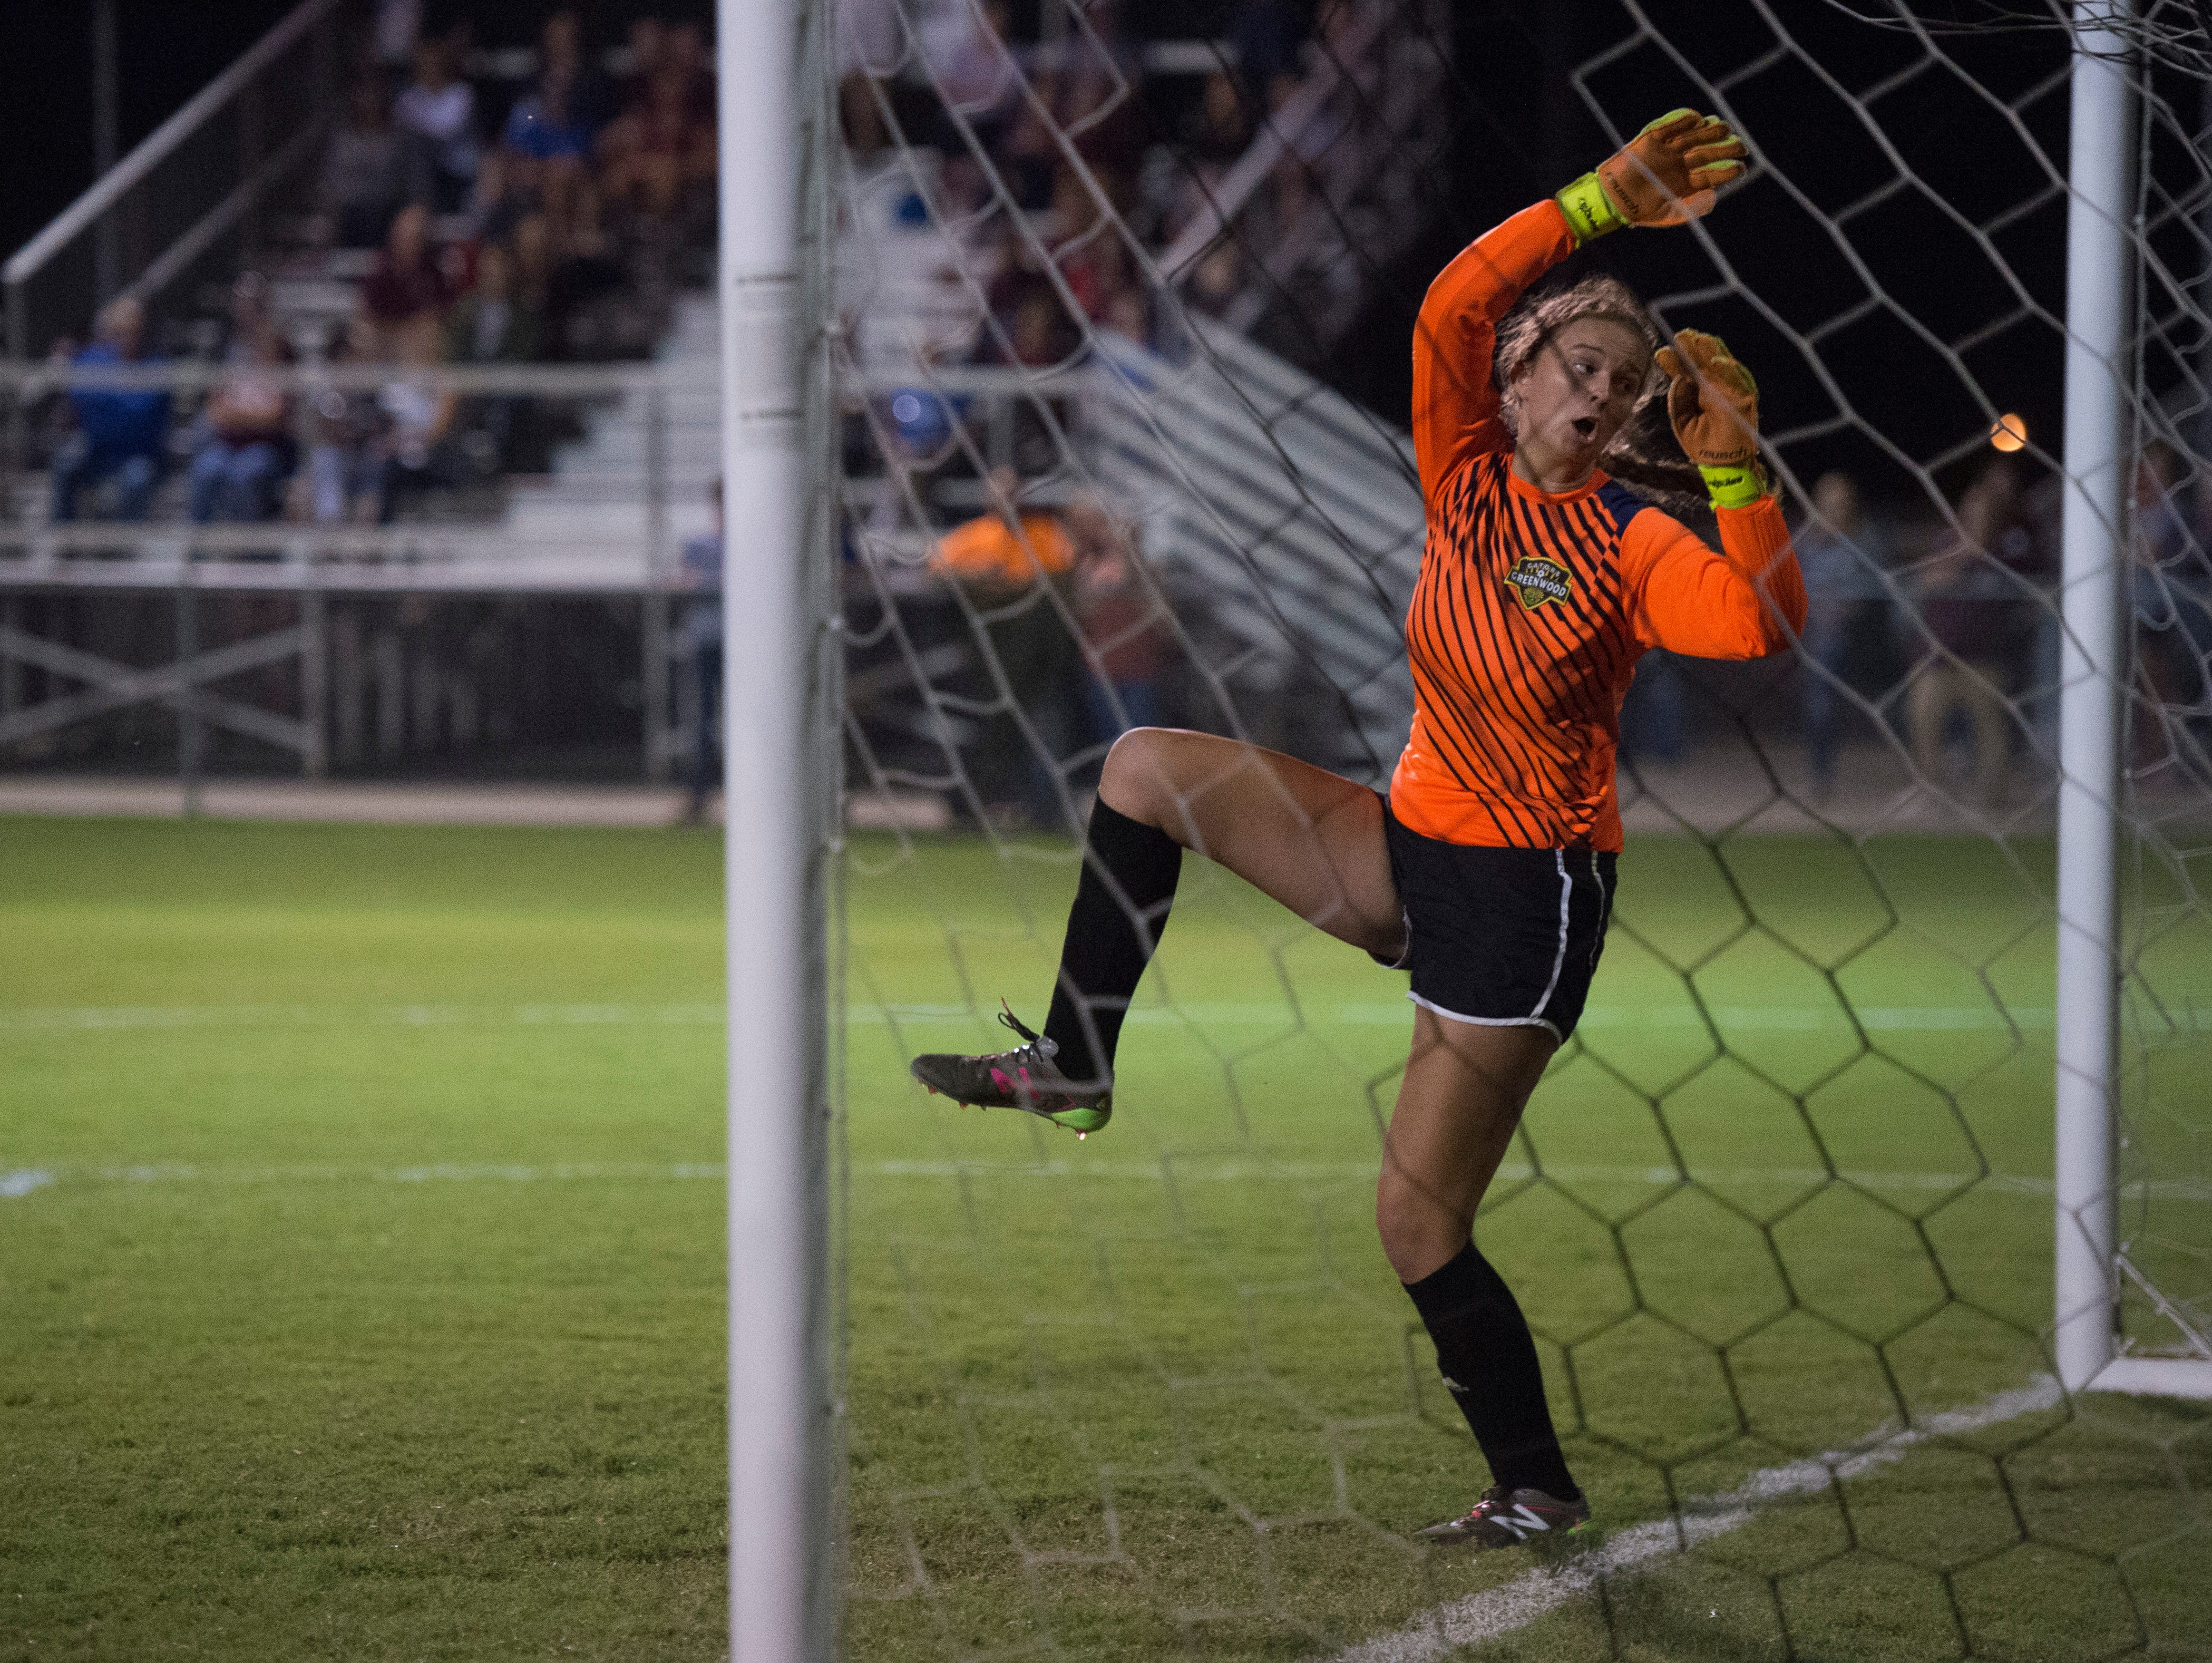 Greenwood's Elizabeth DeMarse (0) is shocked after the ball enters the net just out of reach during the Henderson County vs Greenwood match at Colonel Field in Henderson, Ky., Monday, Oct. 1, 2018. The Gators defeated the Lady Colonels, 4-2.